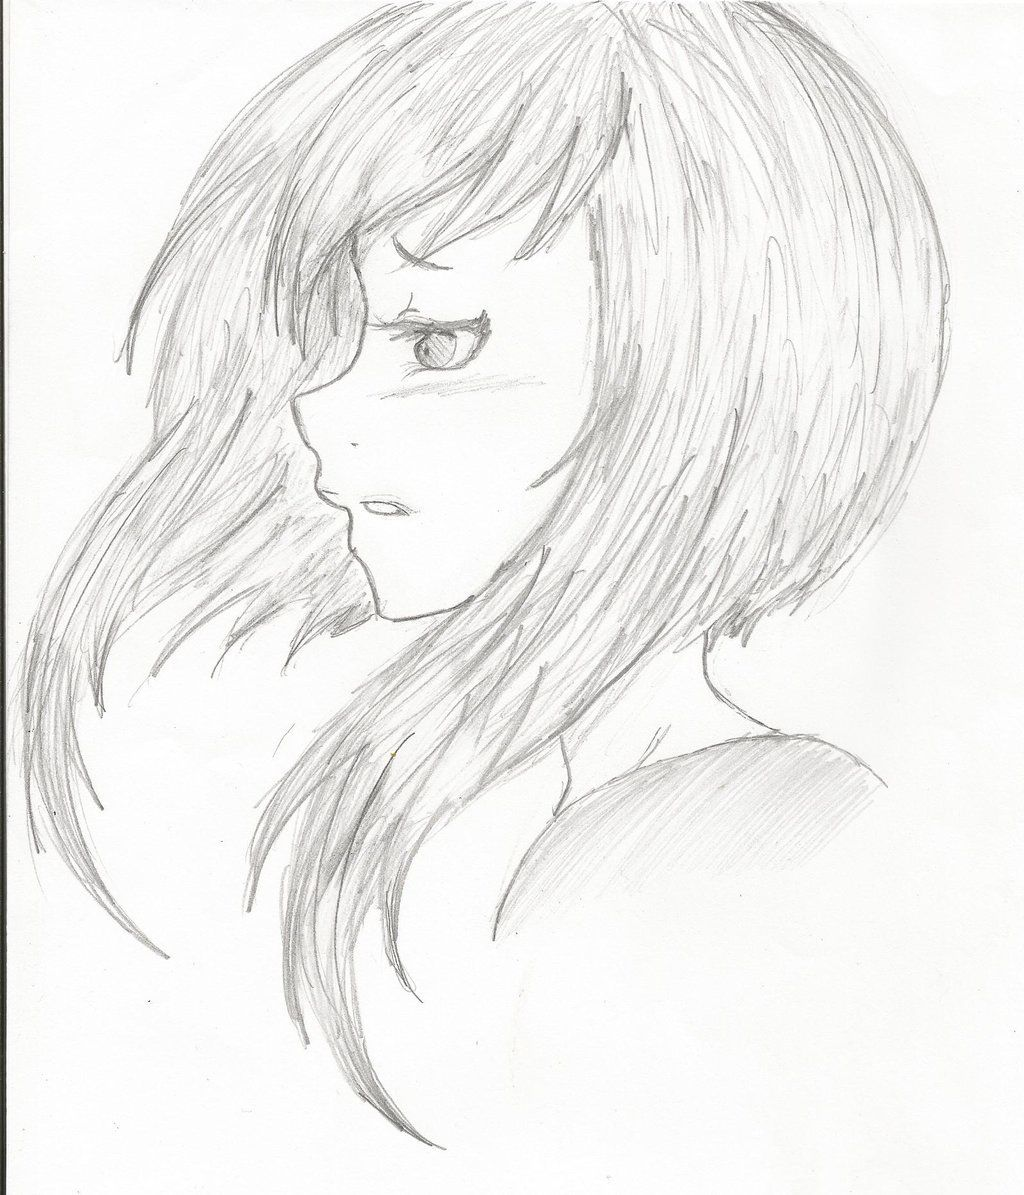 Manga girl hair side view eyes side view